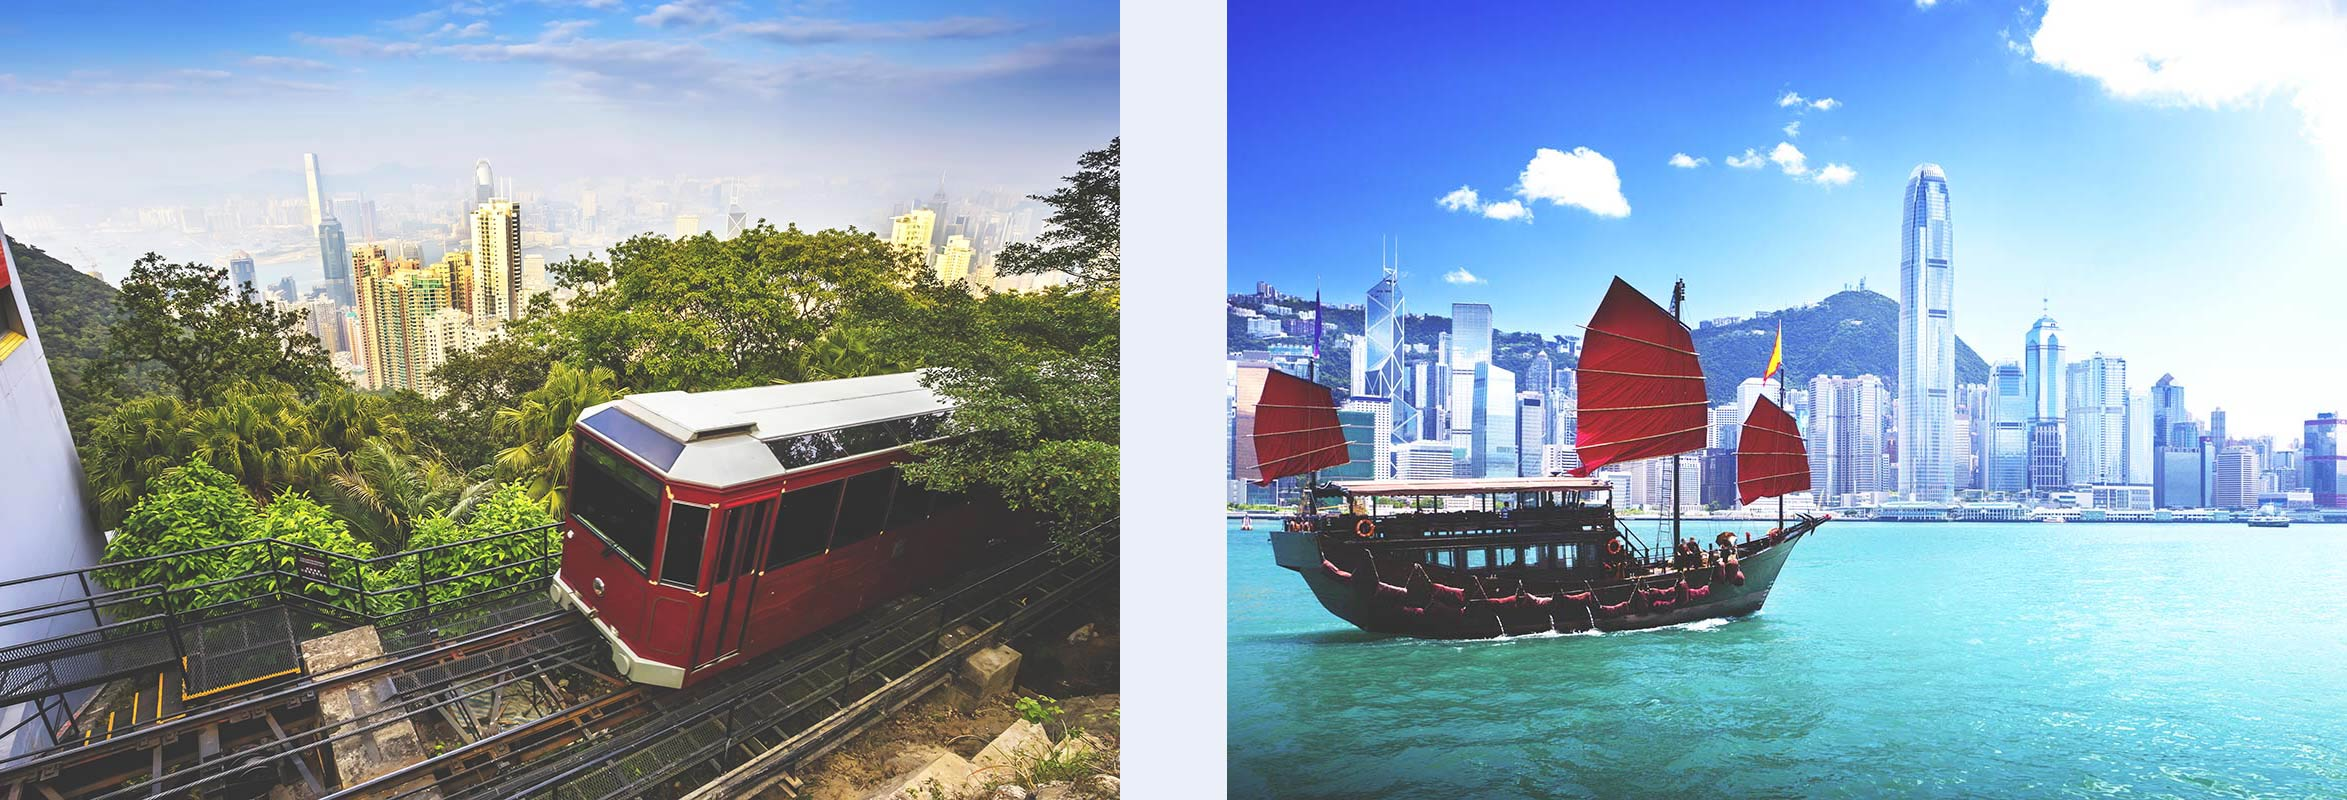 hong_kong_thinkstock_123456